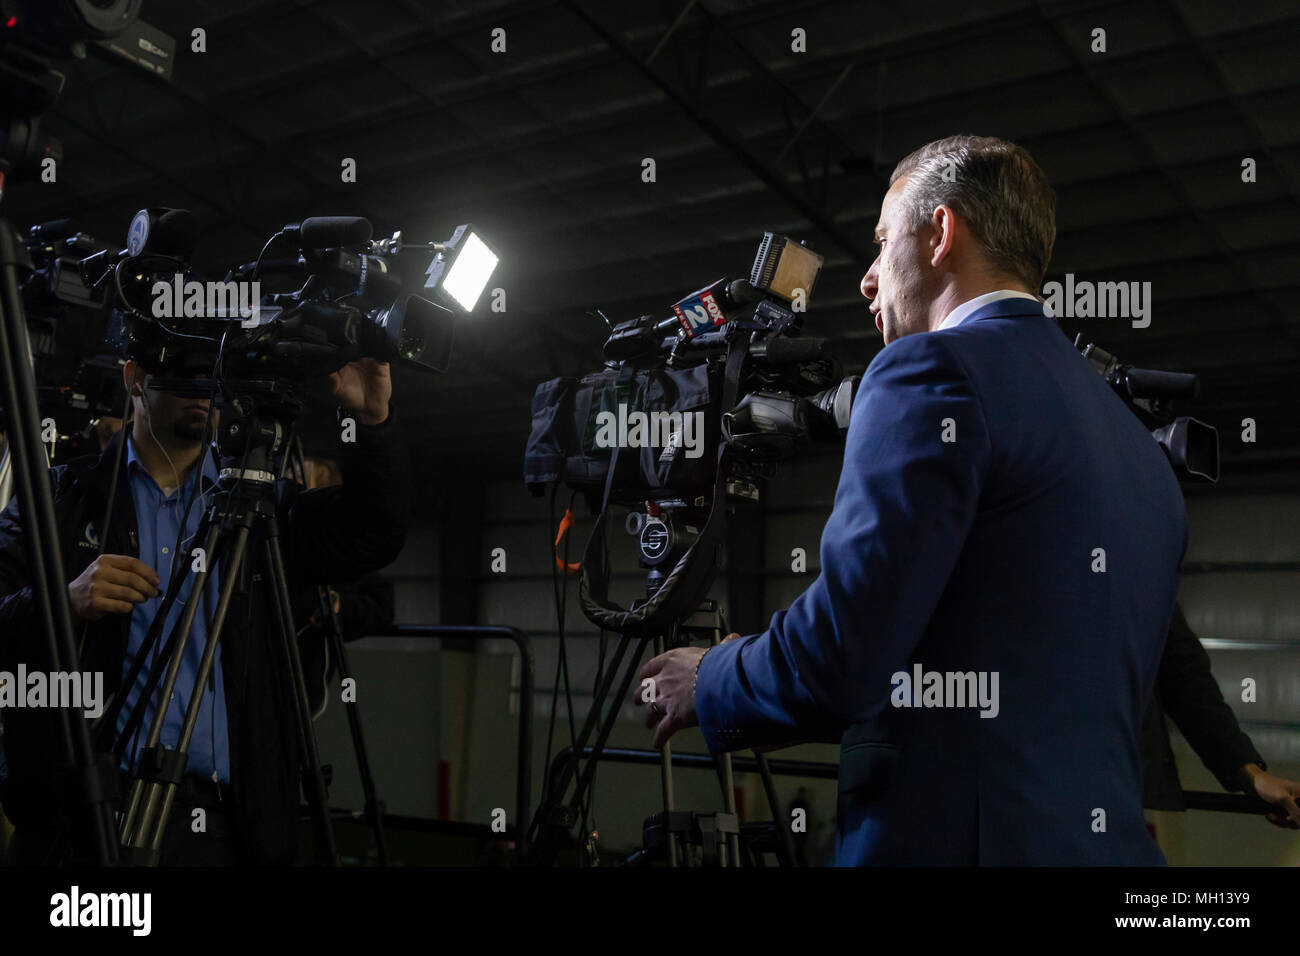 Washington Township, Michigan USA - A television reporter broadcasts live from President Donald Trump's campaign rally in Macomb County, Michigan. - Stock Image